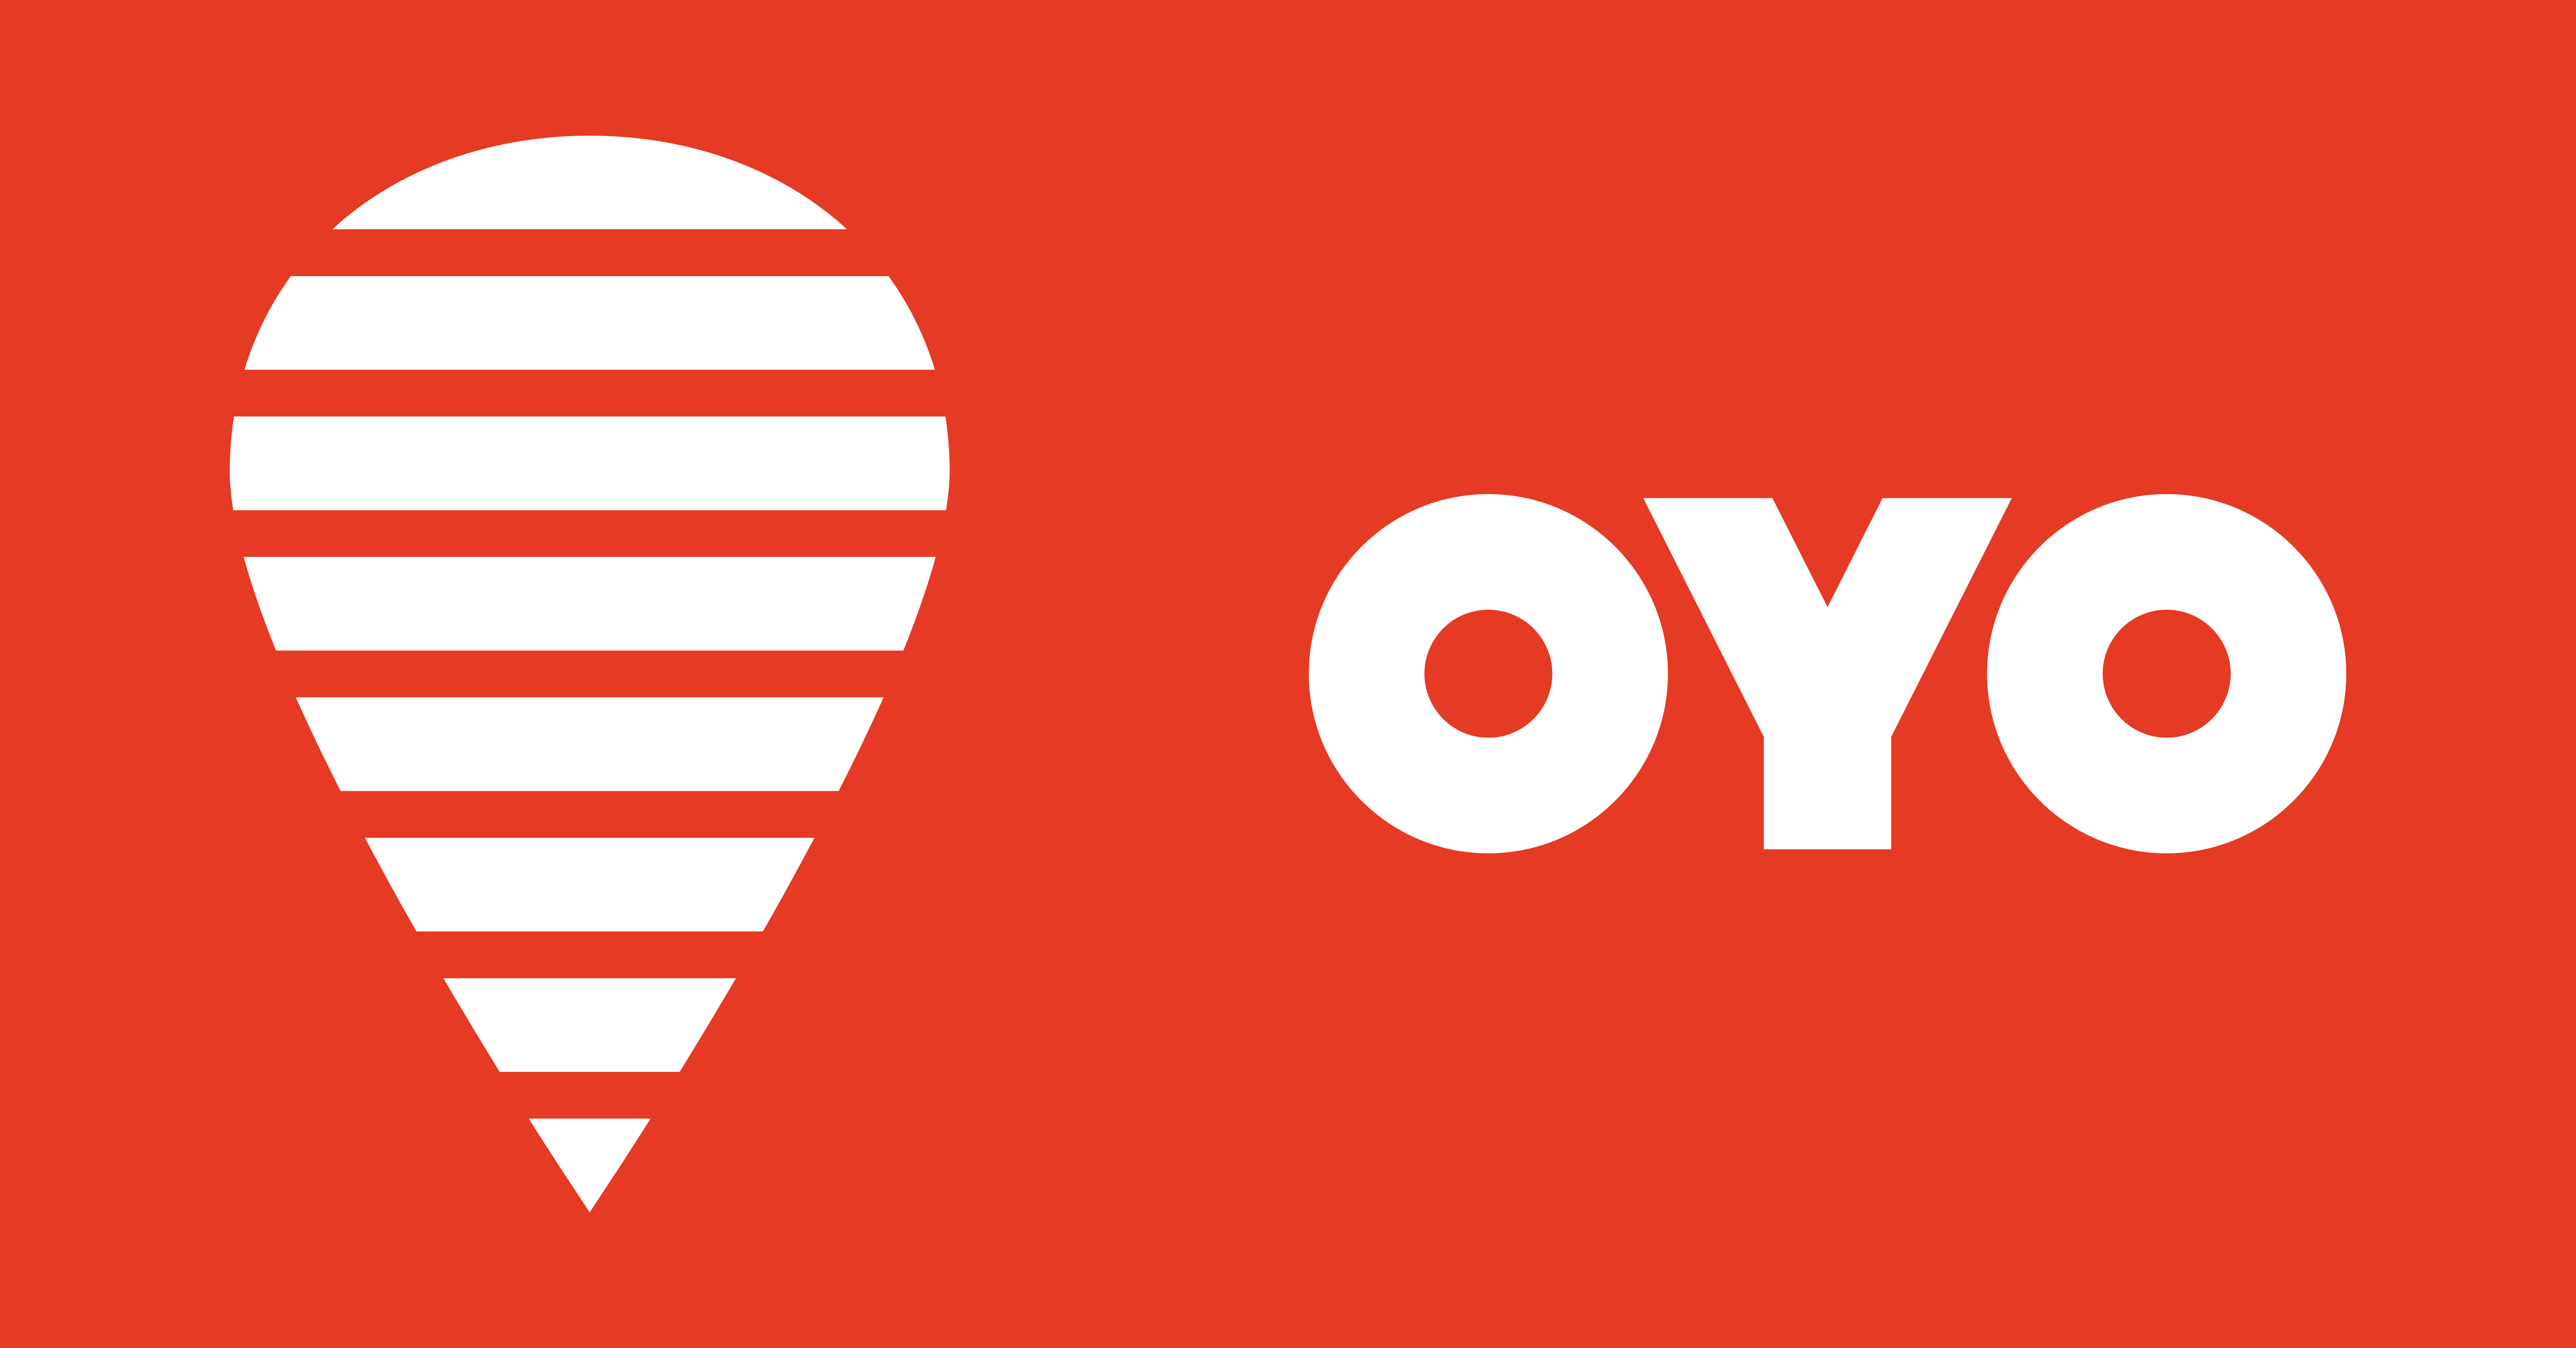 OYO Rooms planning to launch training facility in Gurgaon to train 1 lakh people- mybigplunge